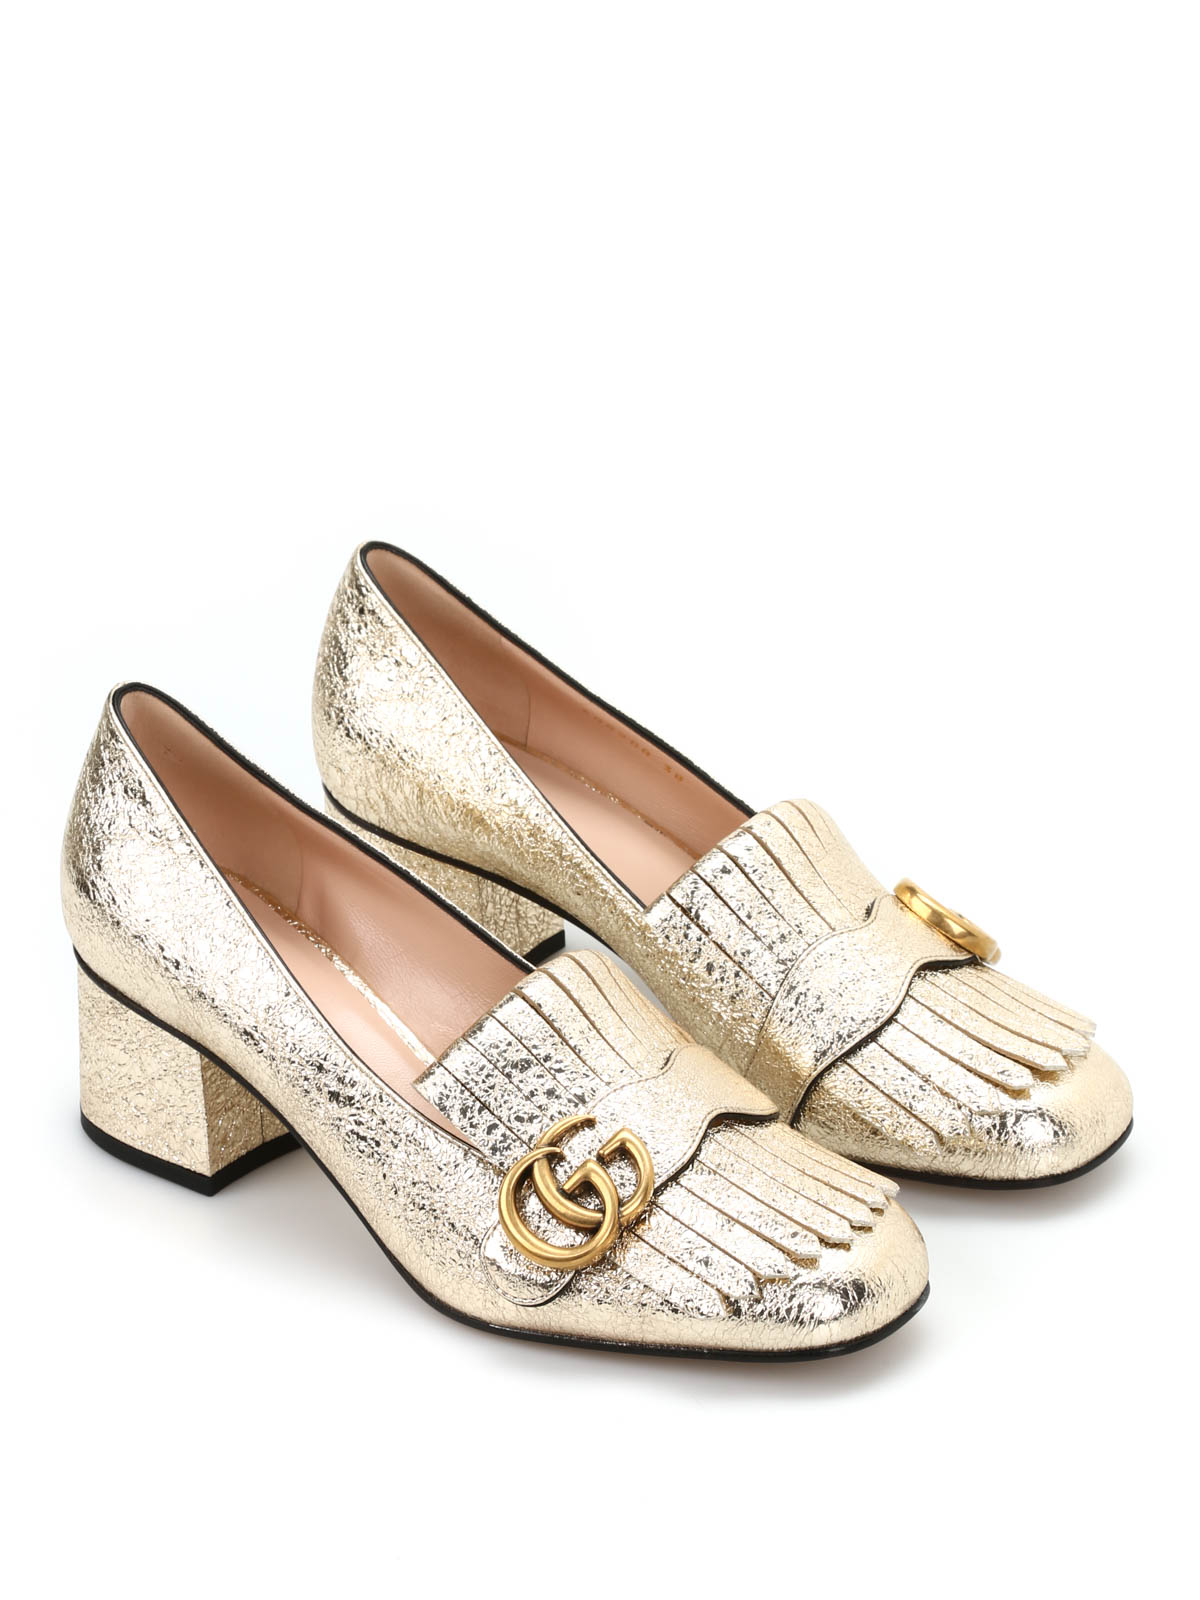 4ac1358f6 Gucci - Metallic leather loafers - Loafers   Slippers - 408208 DKT00 ...